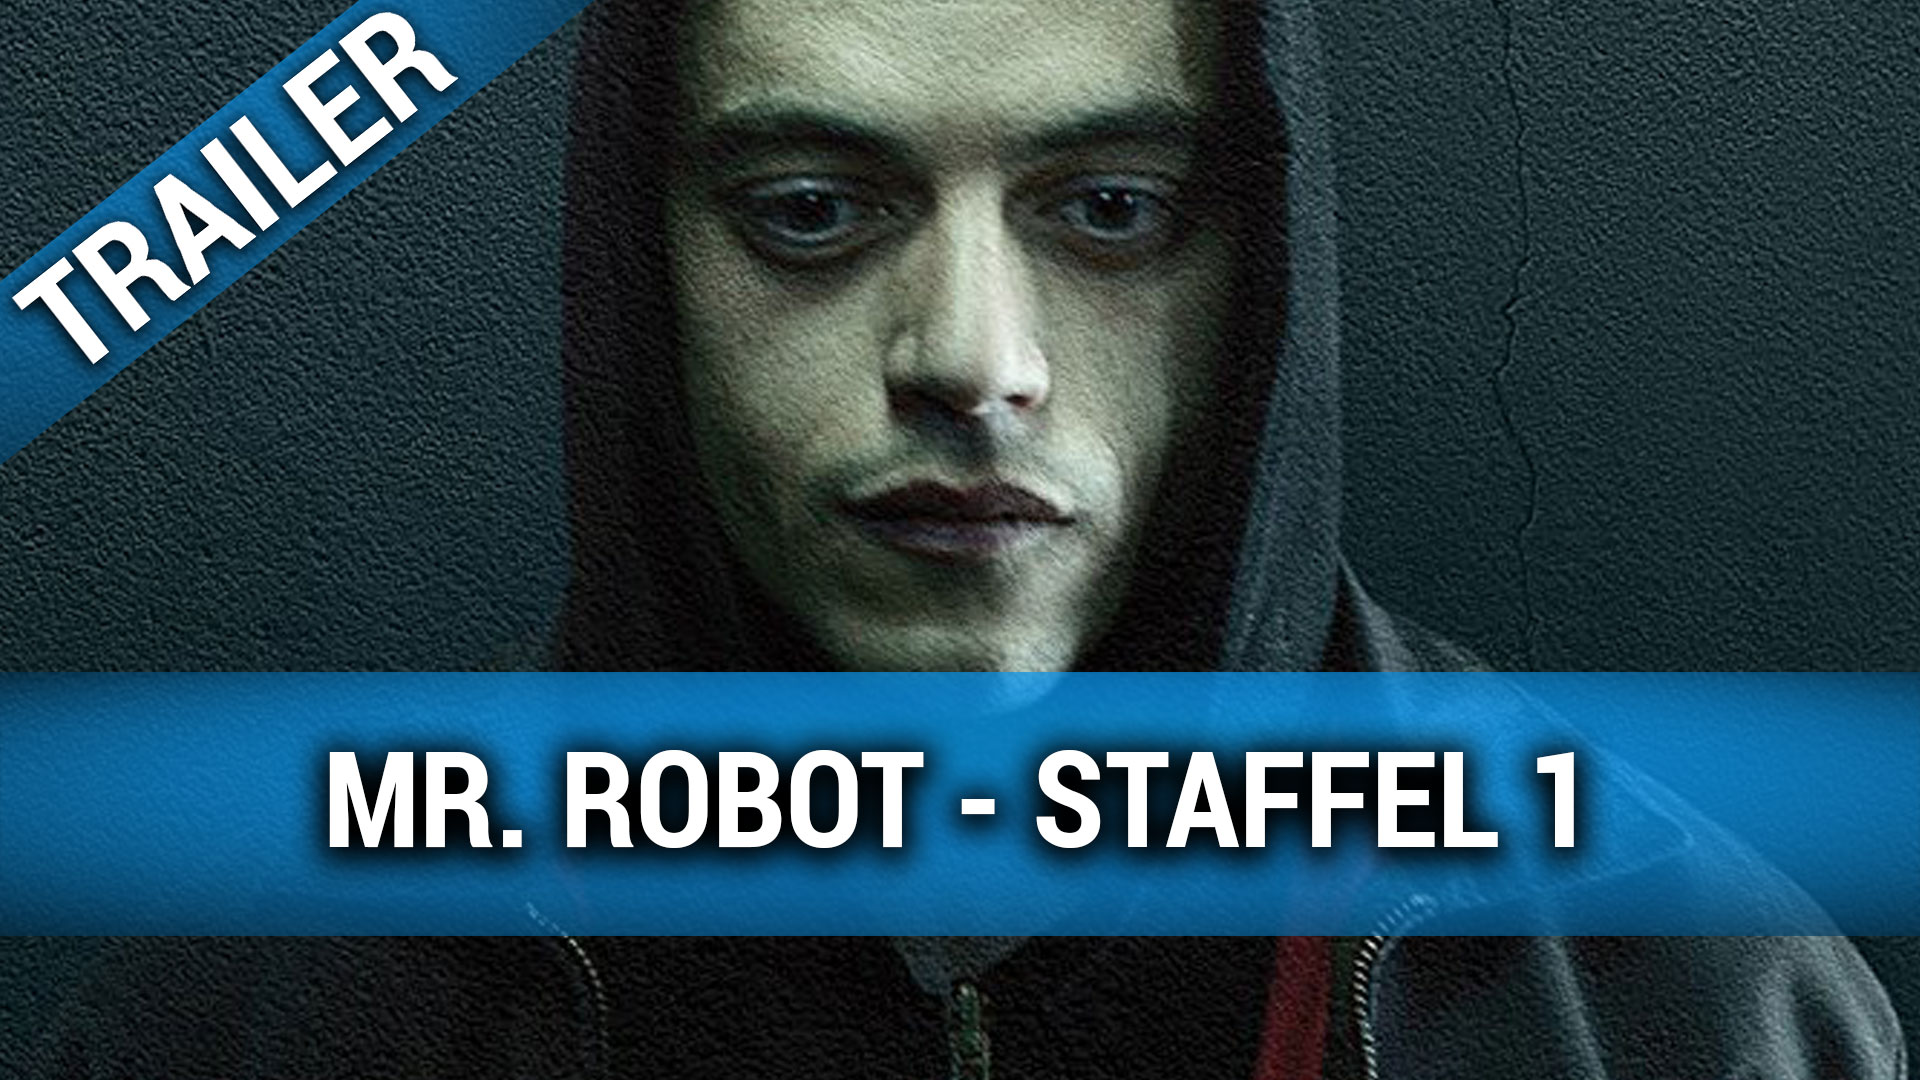 Mr Robot Staffel 1 Offizieller Trailer Deutsch